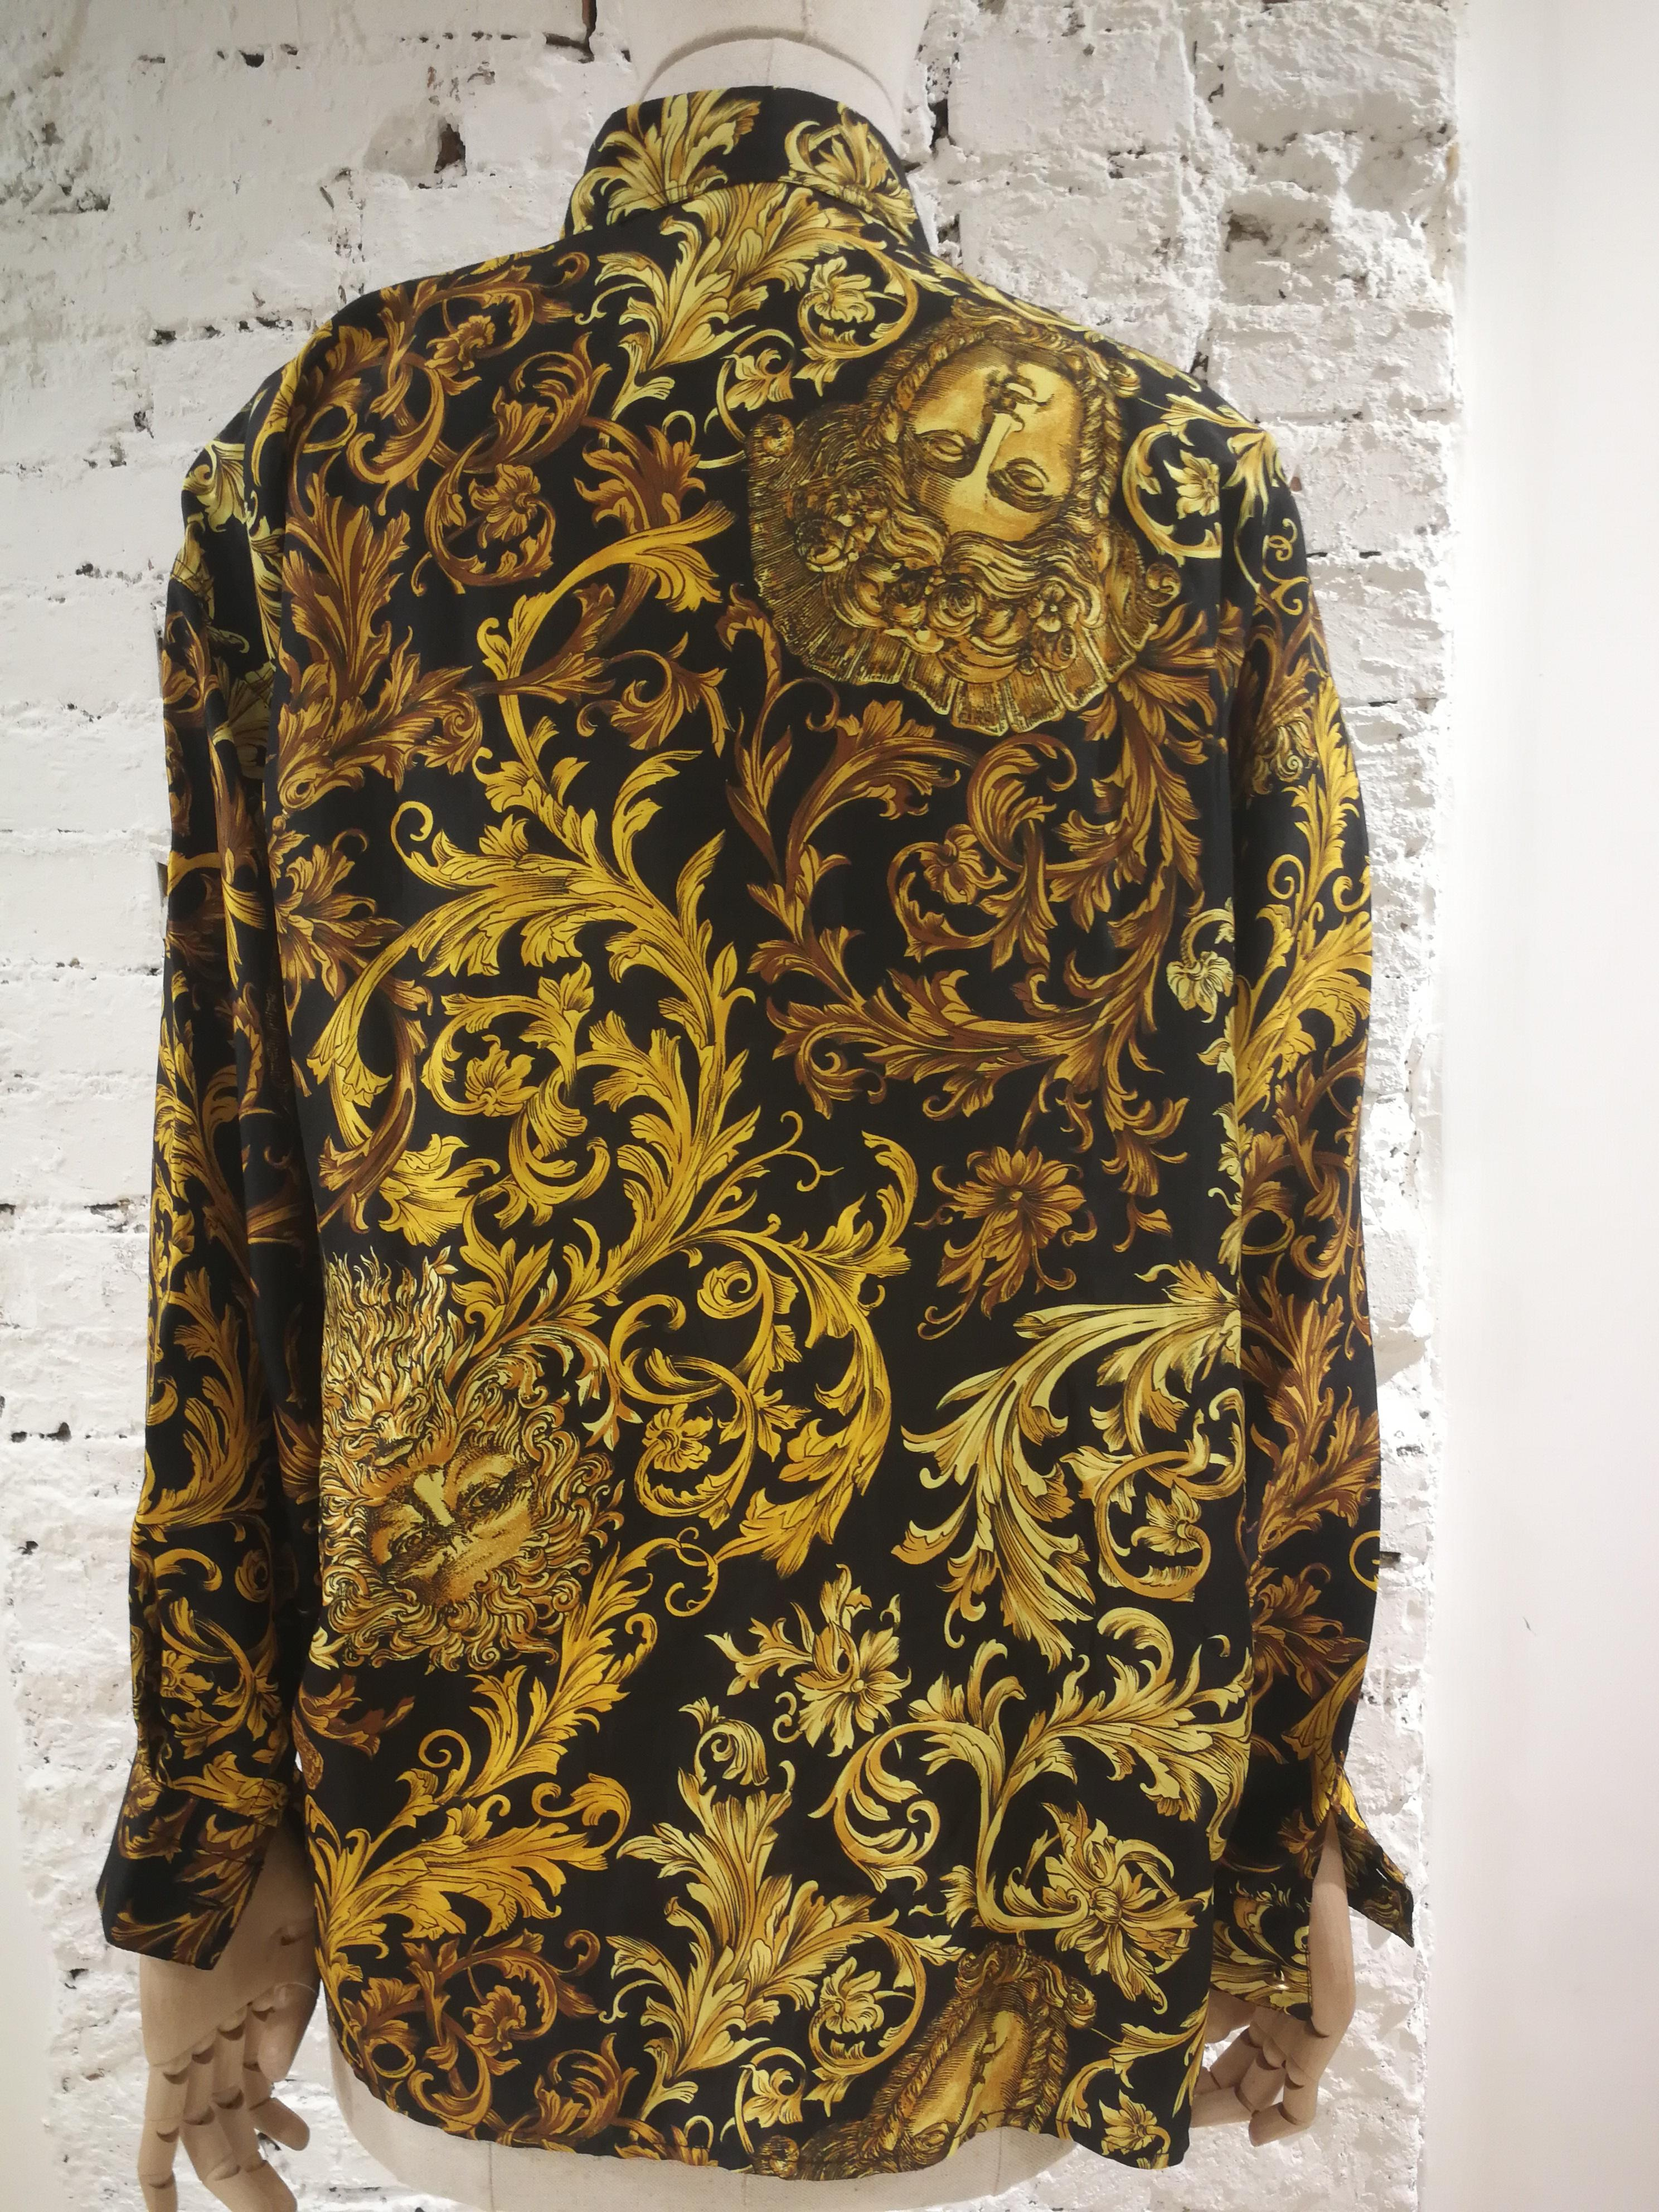 9c74951f7f654e Gianni Versace Black Gold Baroque Silk Shirt For Sale at 1stdibs